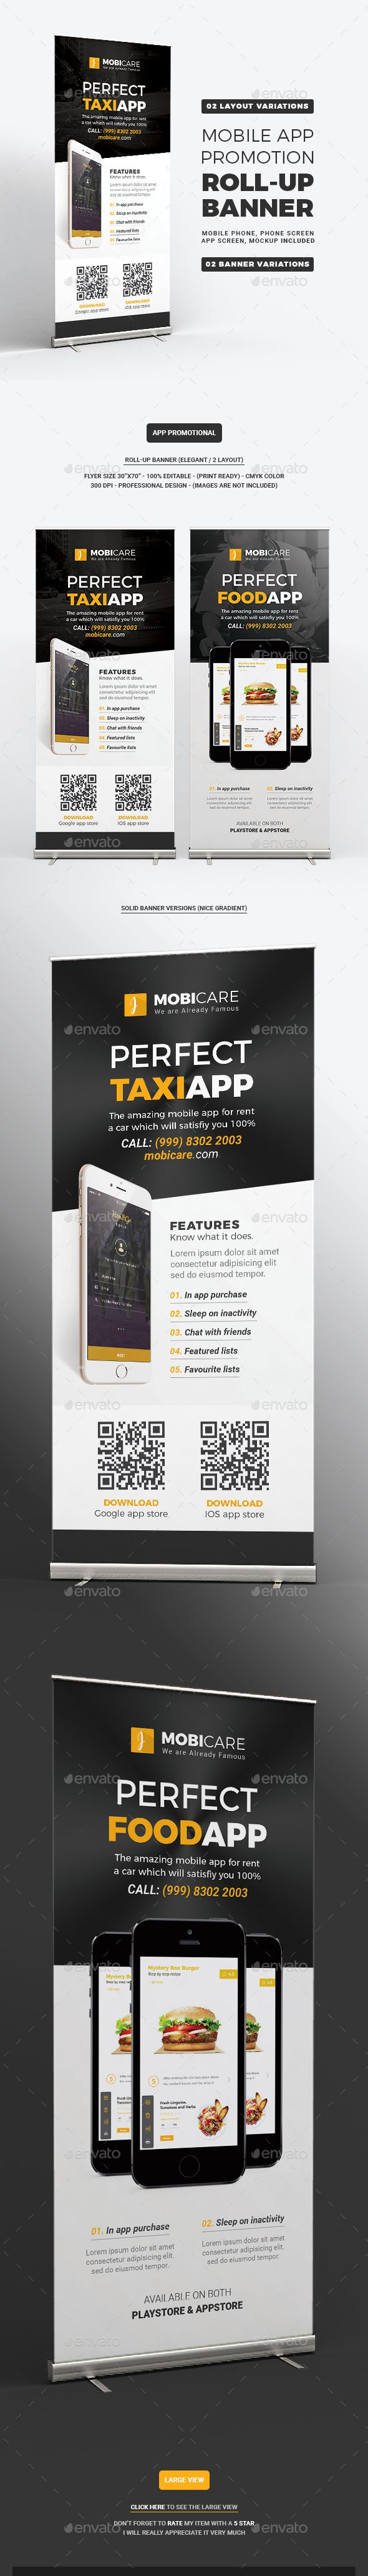 Mobile App Promotion Roll-up Banner Fully editable layers can perfectly consume your own texts and images in a blink. This template includes 2 different layout styles. We've done the hard work to let you focus on your core business.